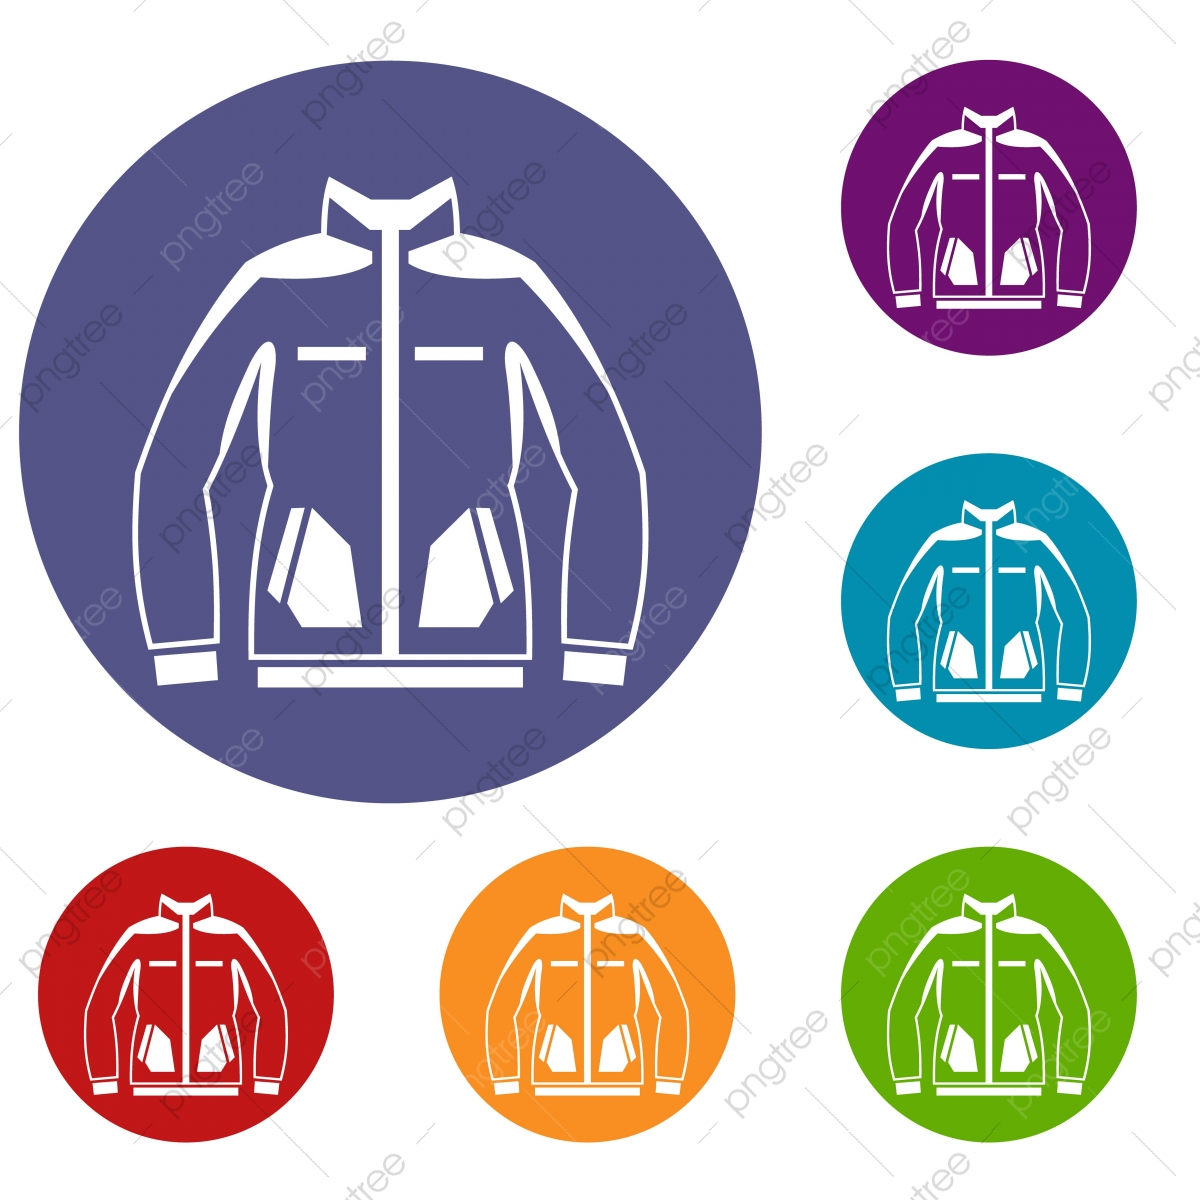 Winter Jacket Png Vector Psd And Clipart With Transparent Background For Free Download Pngtree